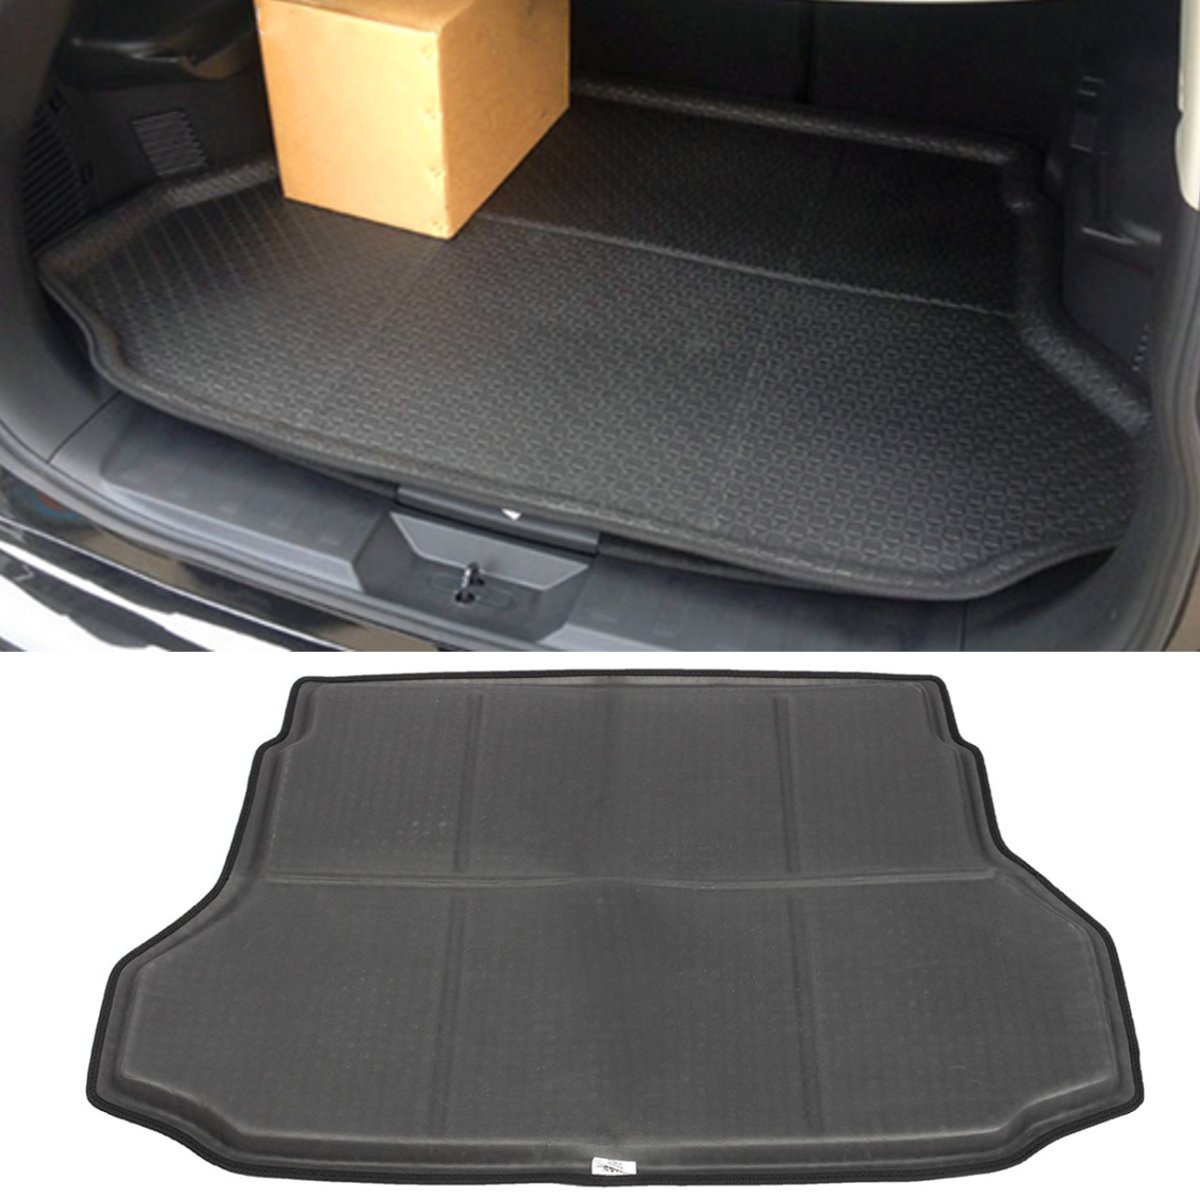 Rubber floor mats nissan rogue - 1x Rear Trunk Car Cargo Mat Floor Protector For Nissan 2014 2015 2016 Rogue 130cmx90cm